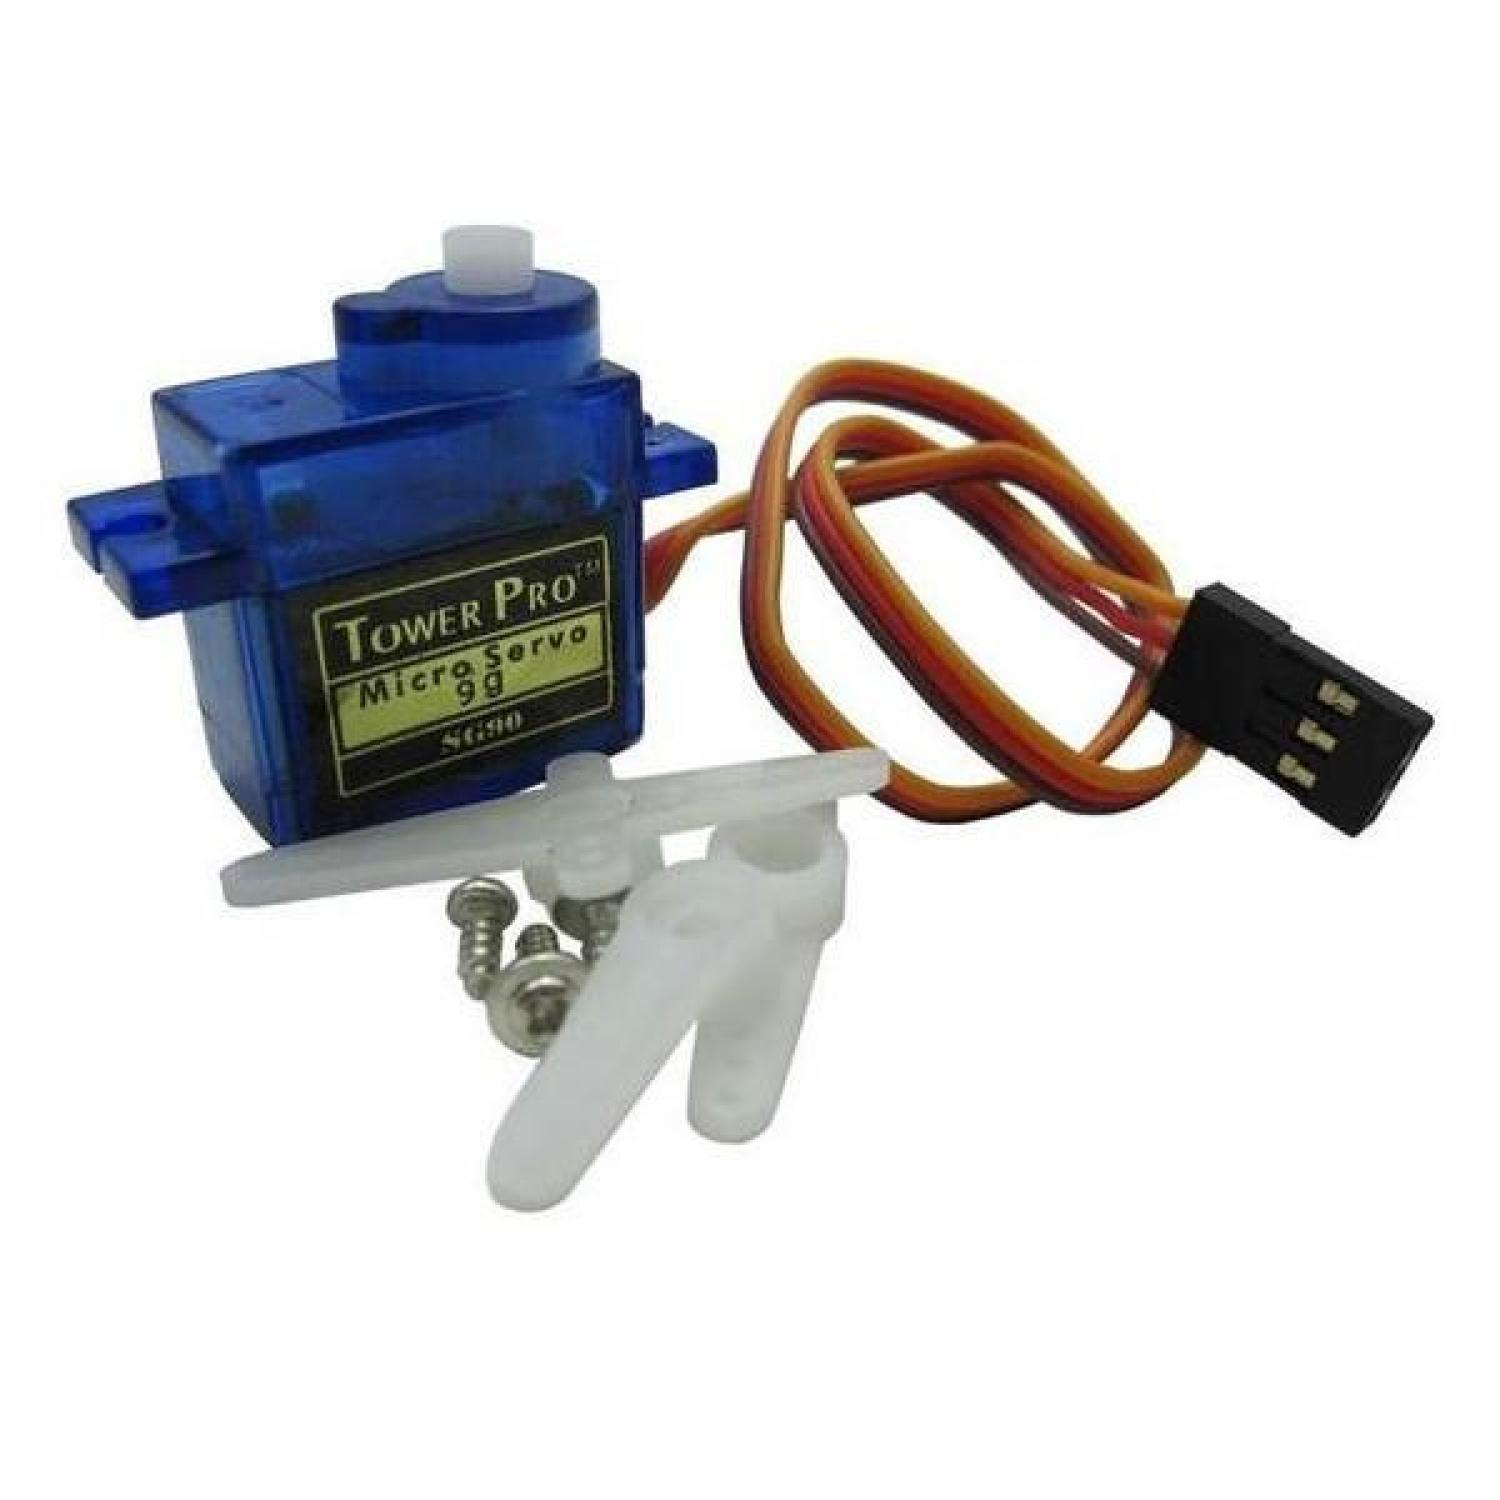 SG90 Mini Gear Micro Servo For RC Car Boat Helicopter Airplane Trex